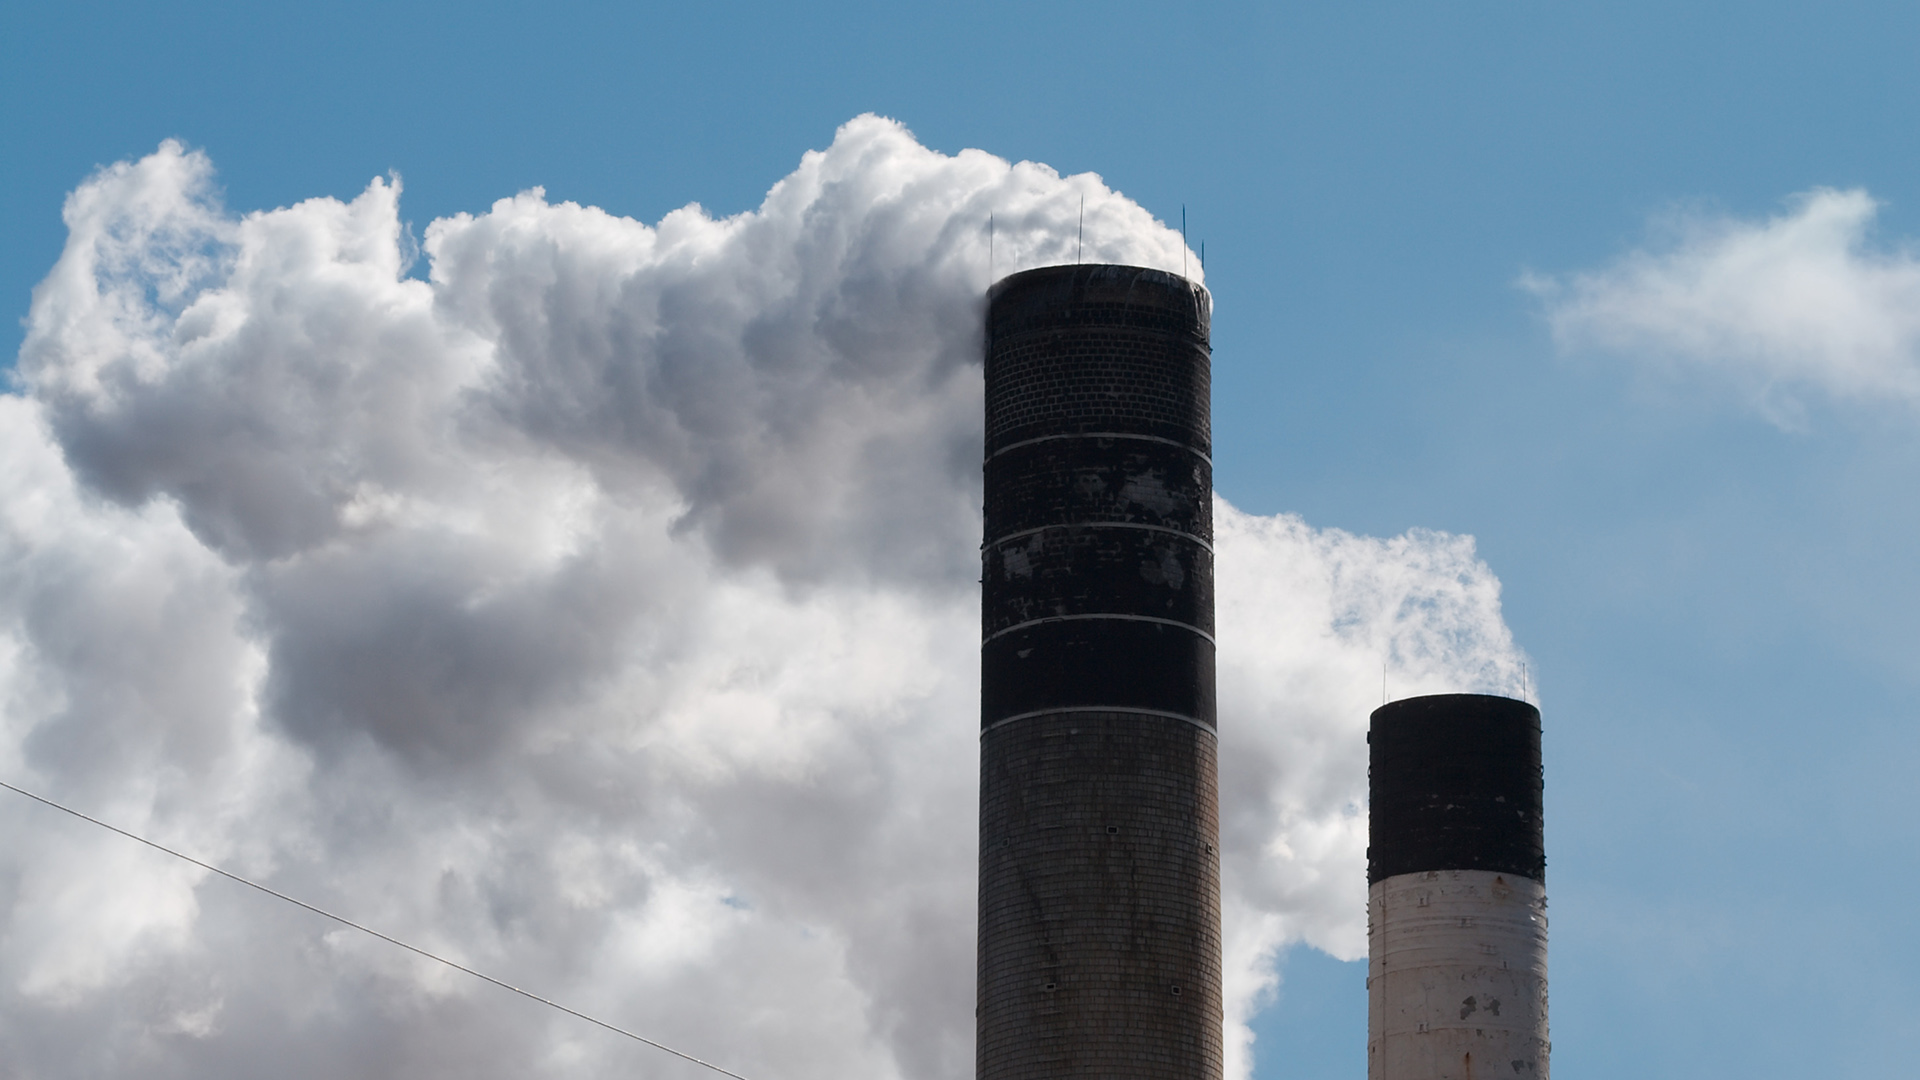 Smokestacks emit smoke into a blue sky.